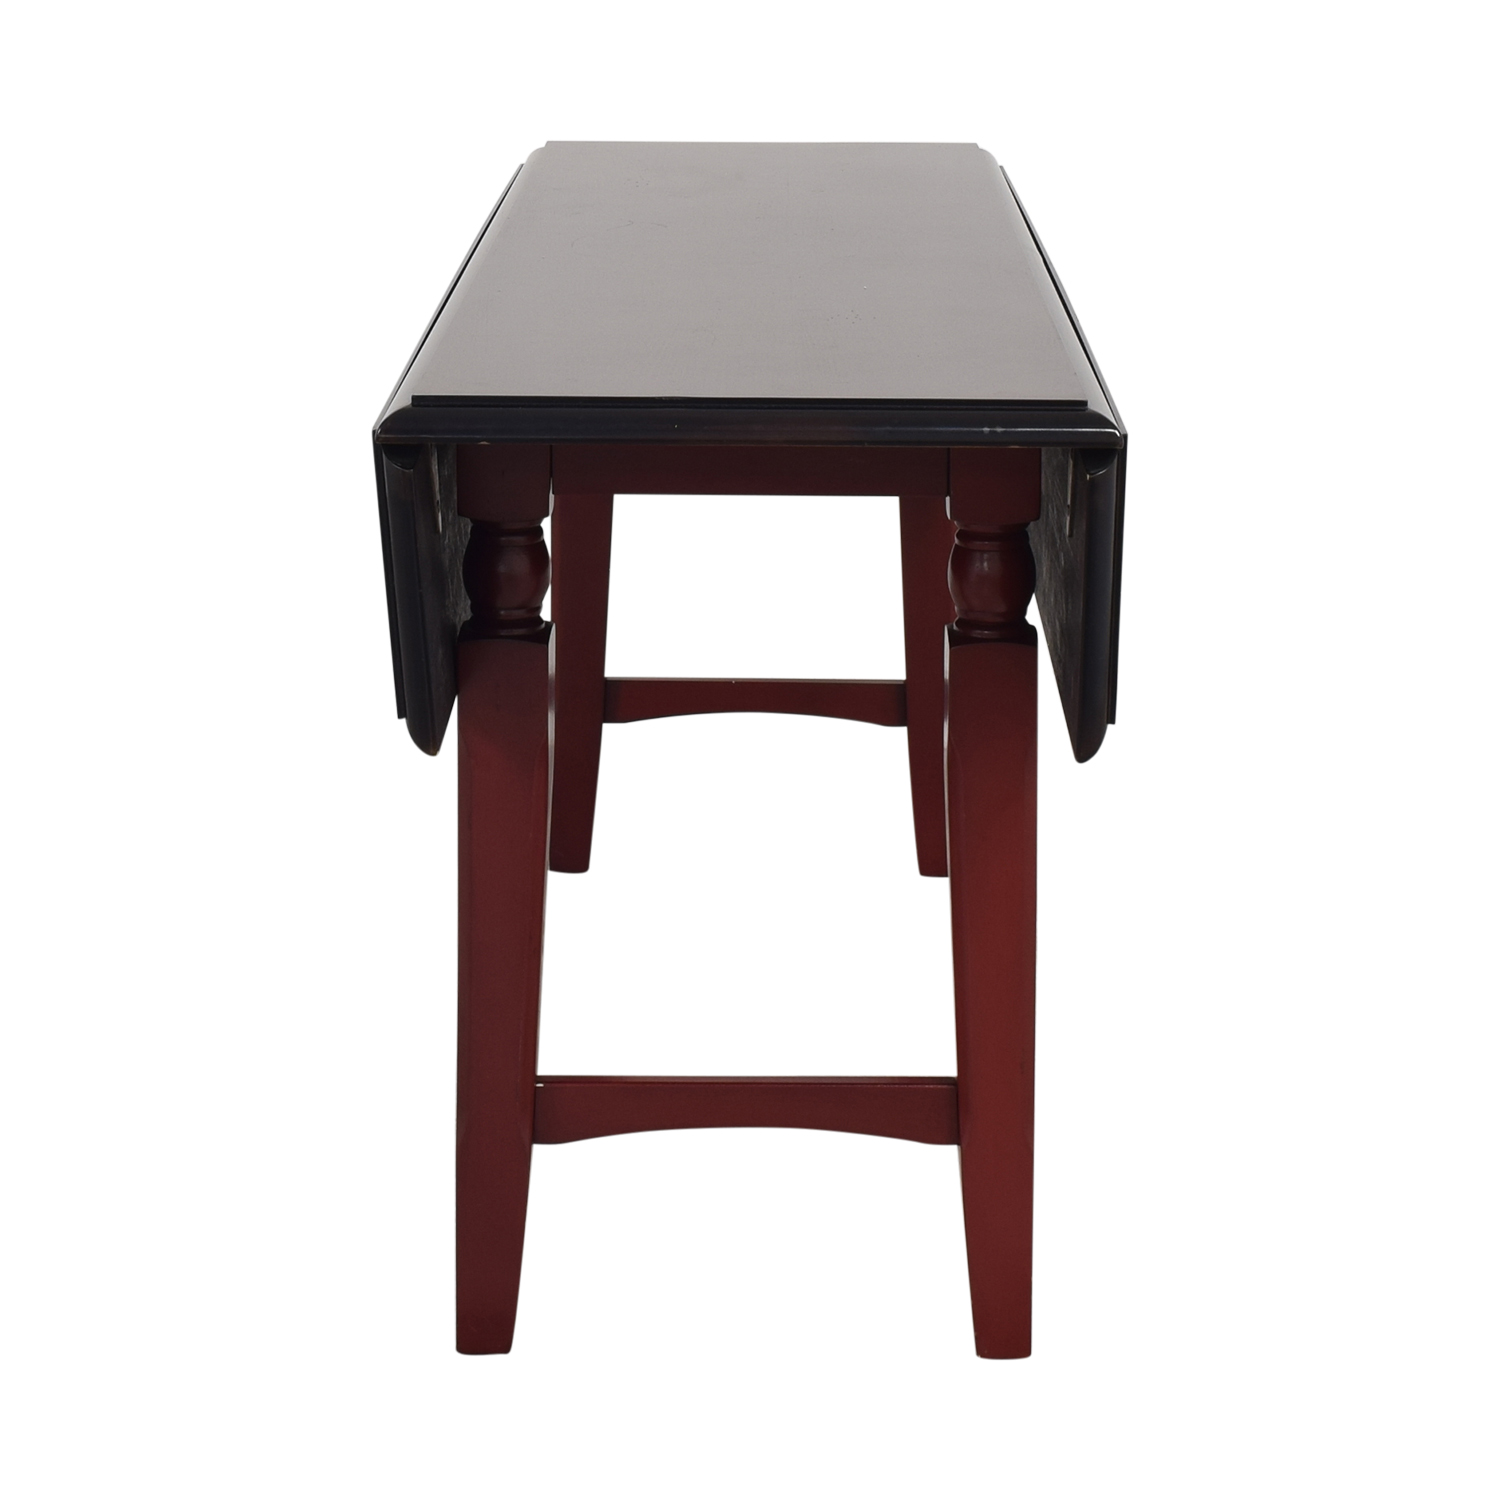 Pier 1 Pier1 Import Drop-Leaf  Dining Table price